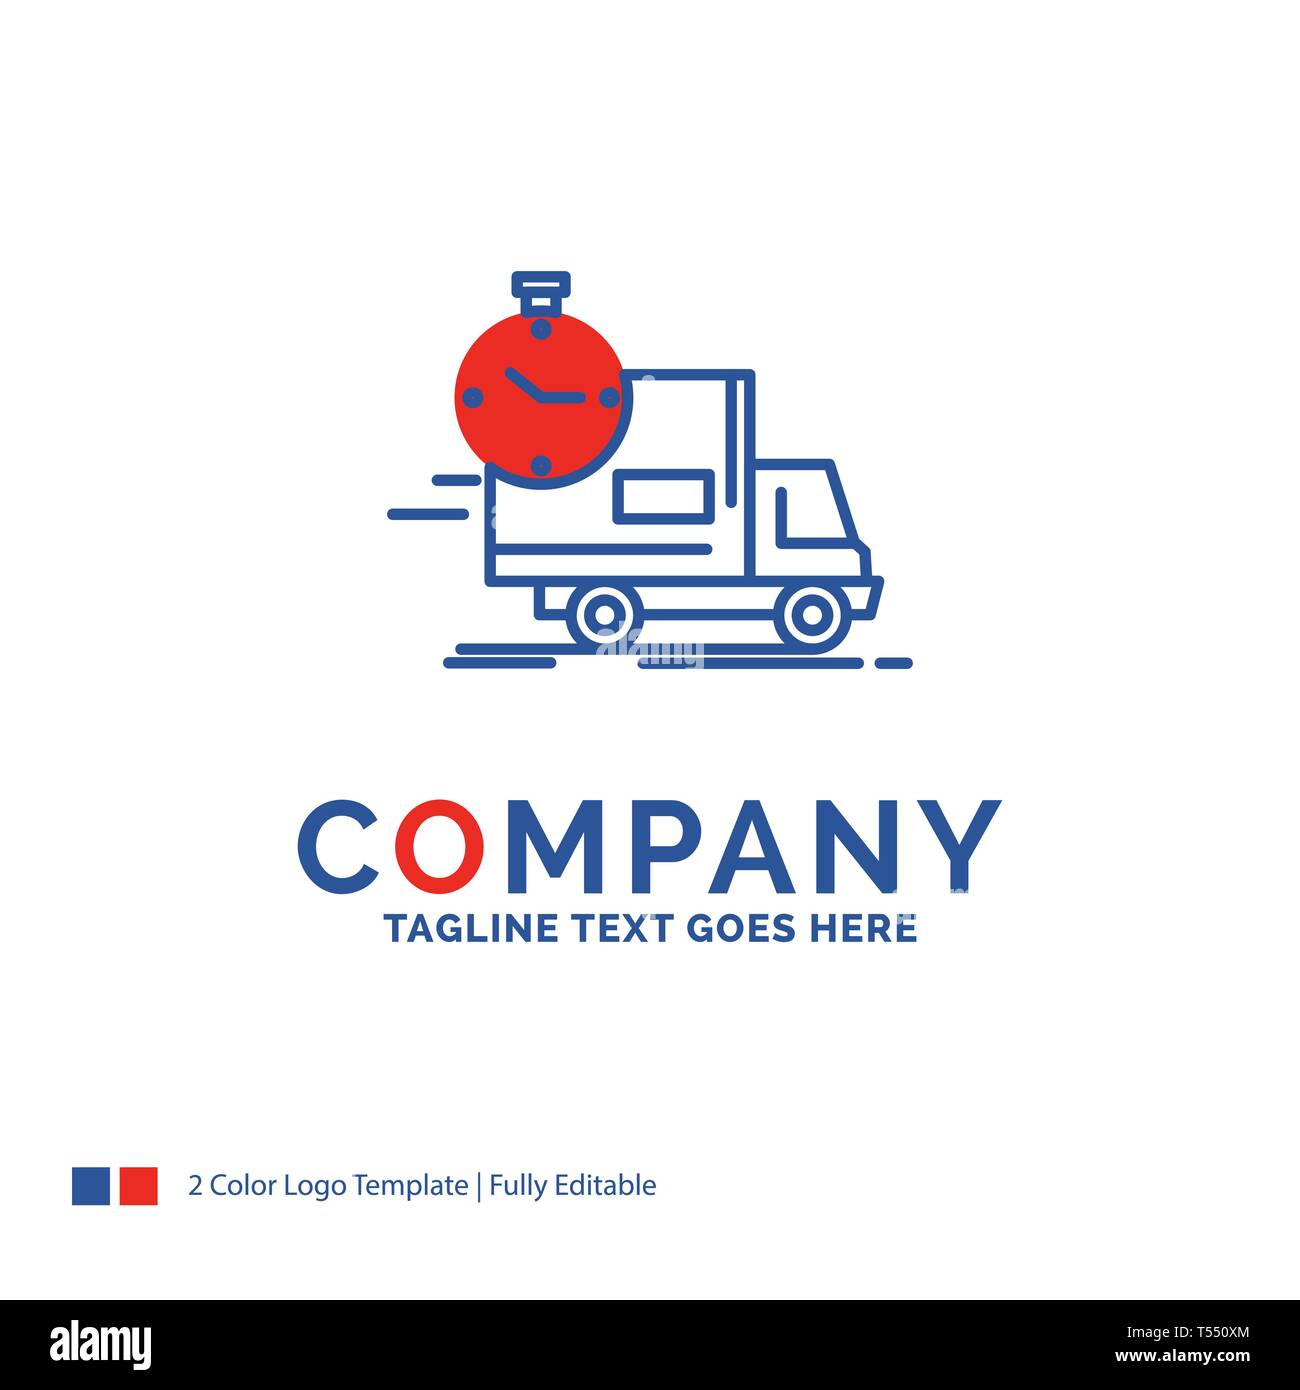 Company Name Logo Design For delivery, time, shipping